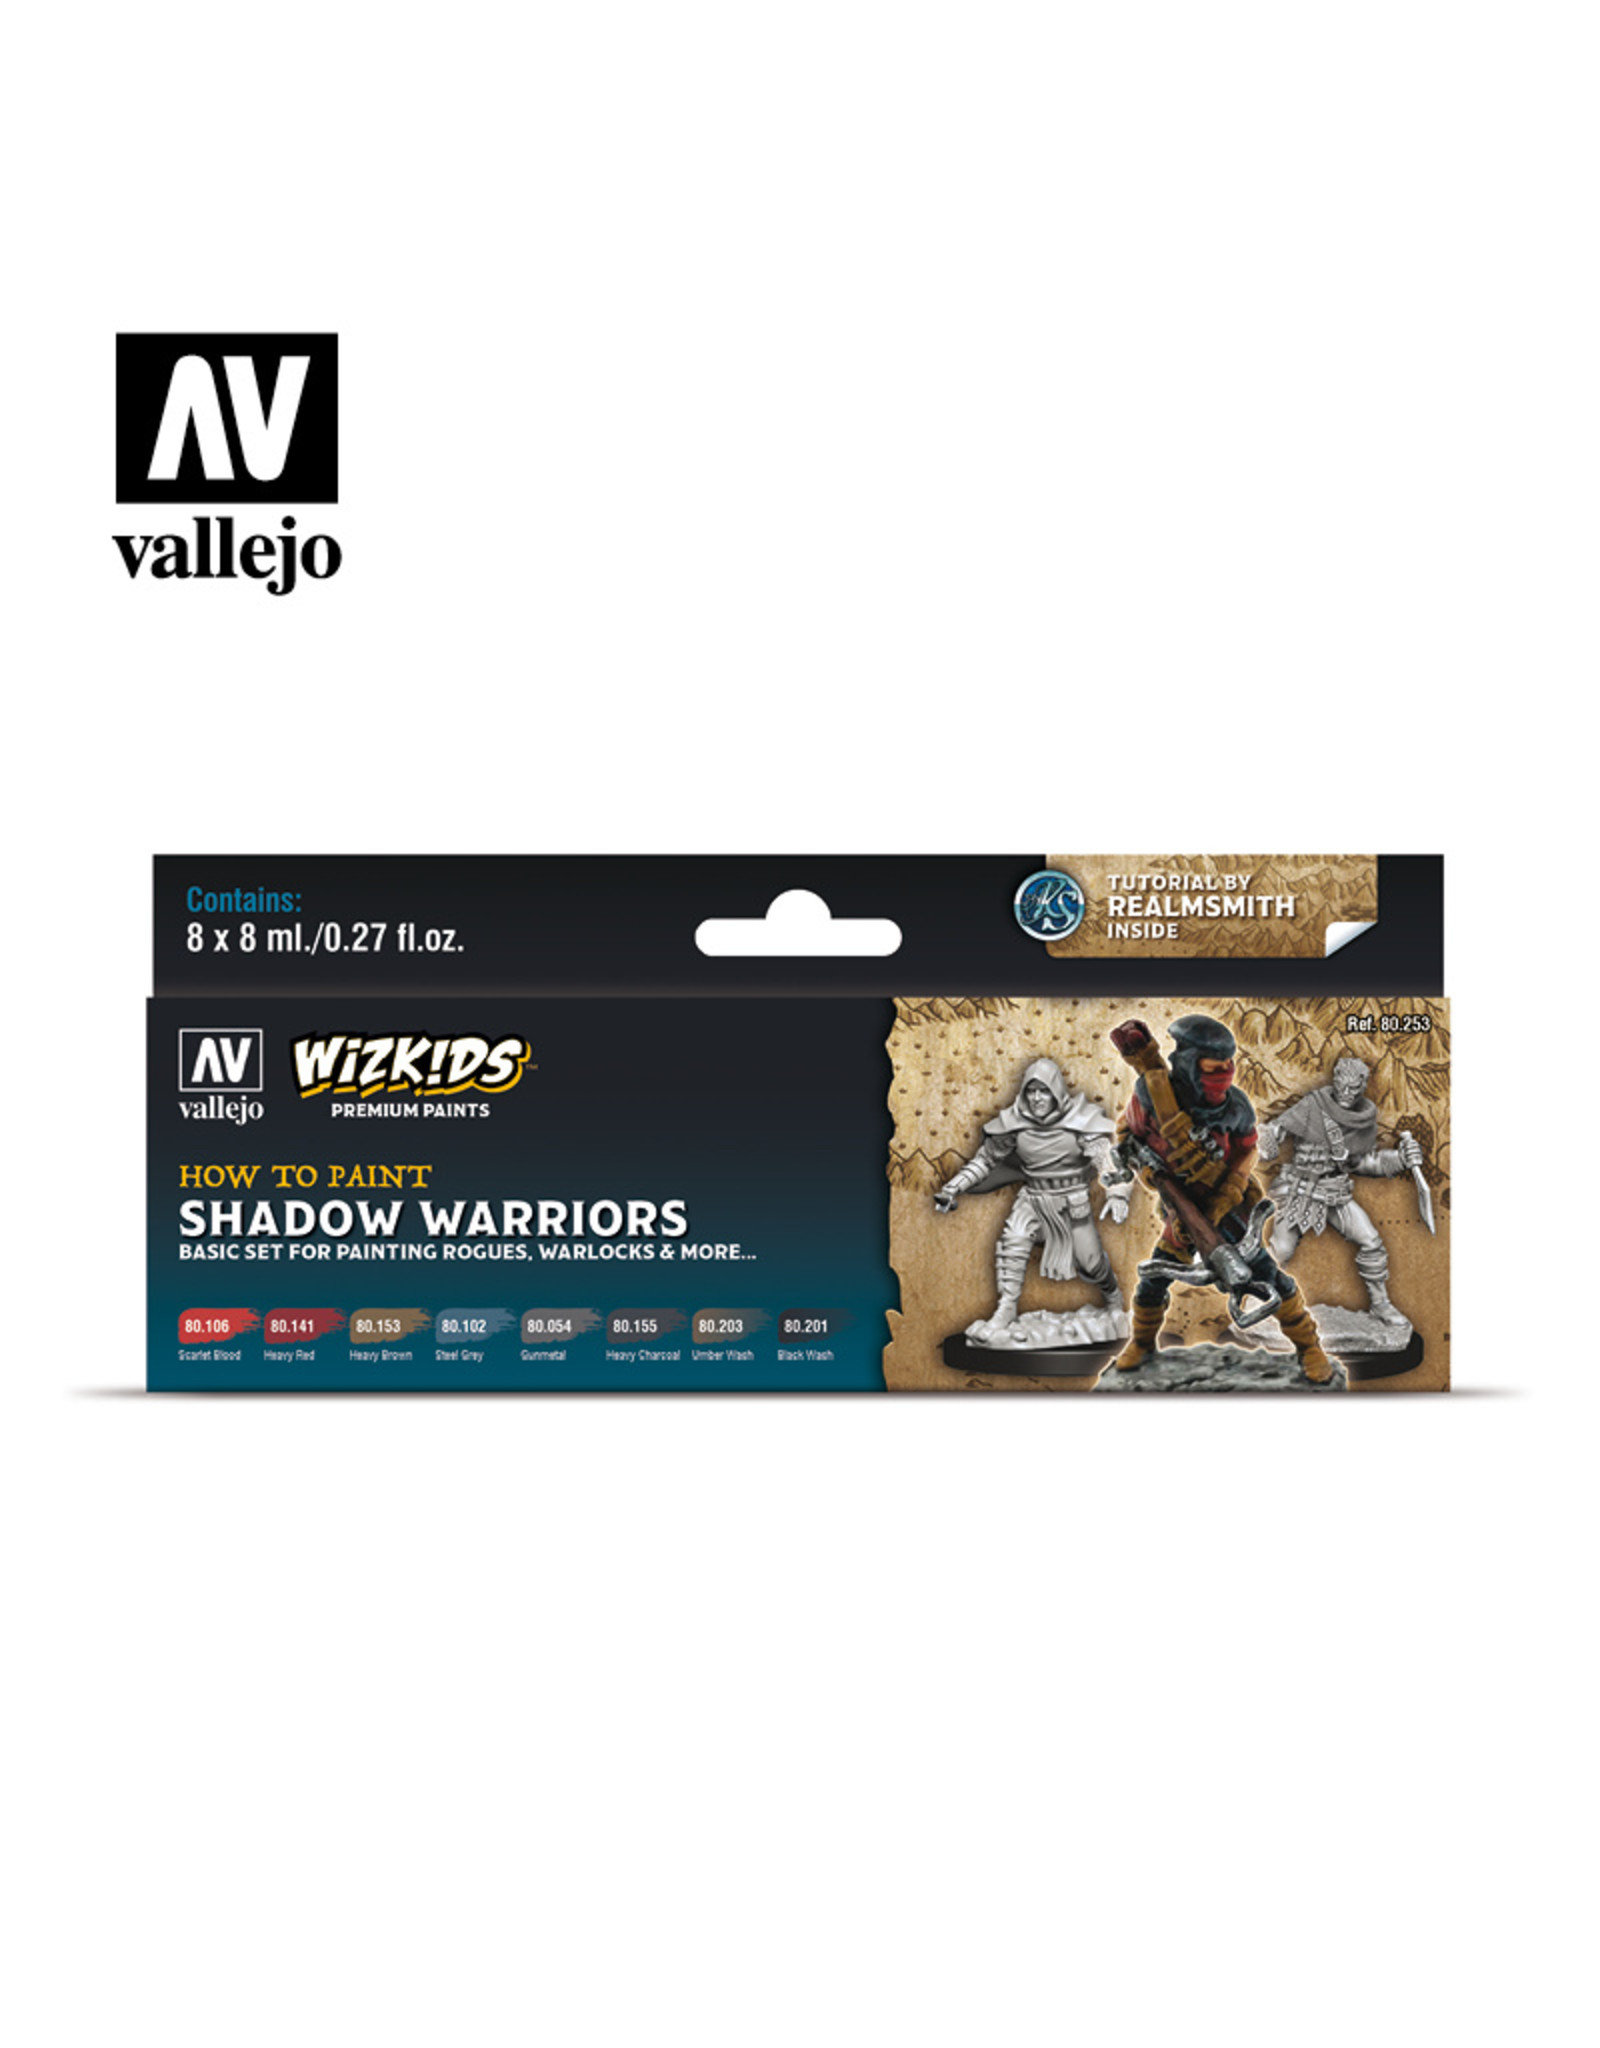 Vallejo Themed Paint Sets with Tutorials and Miniature